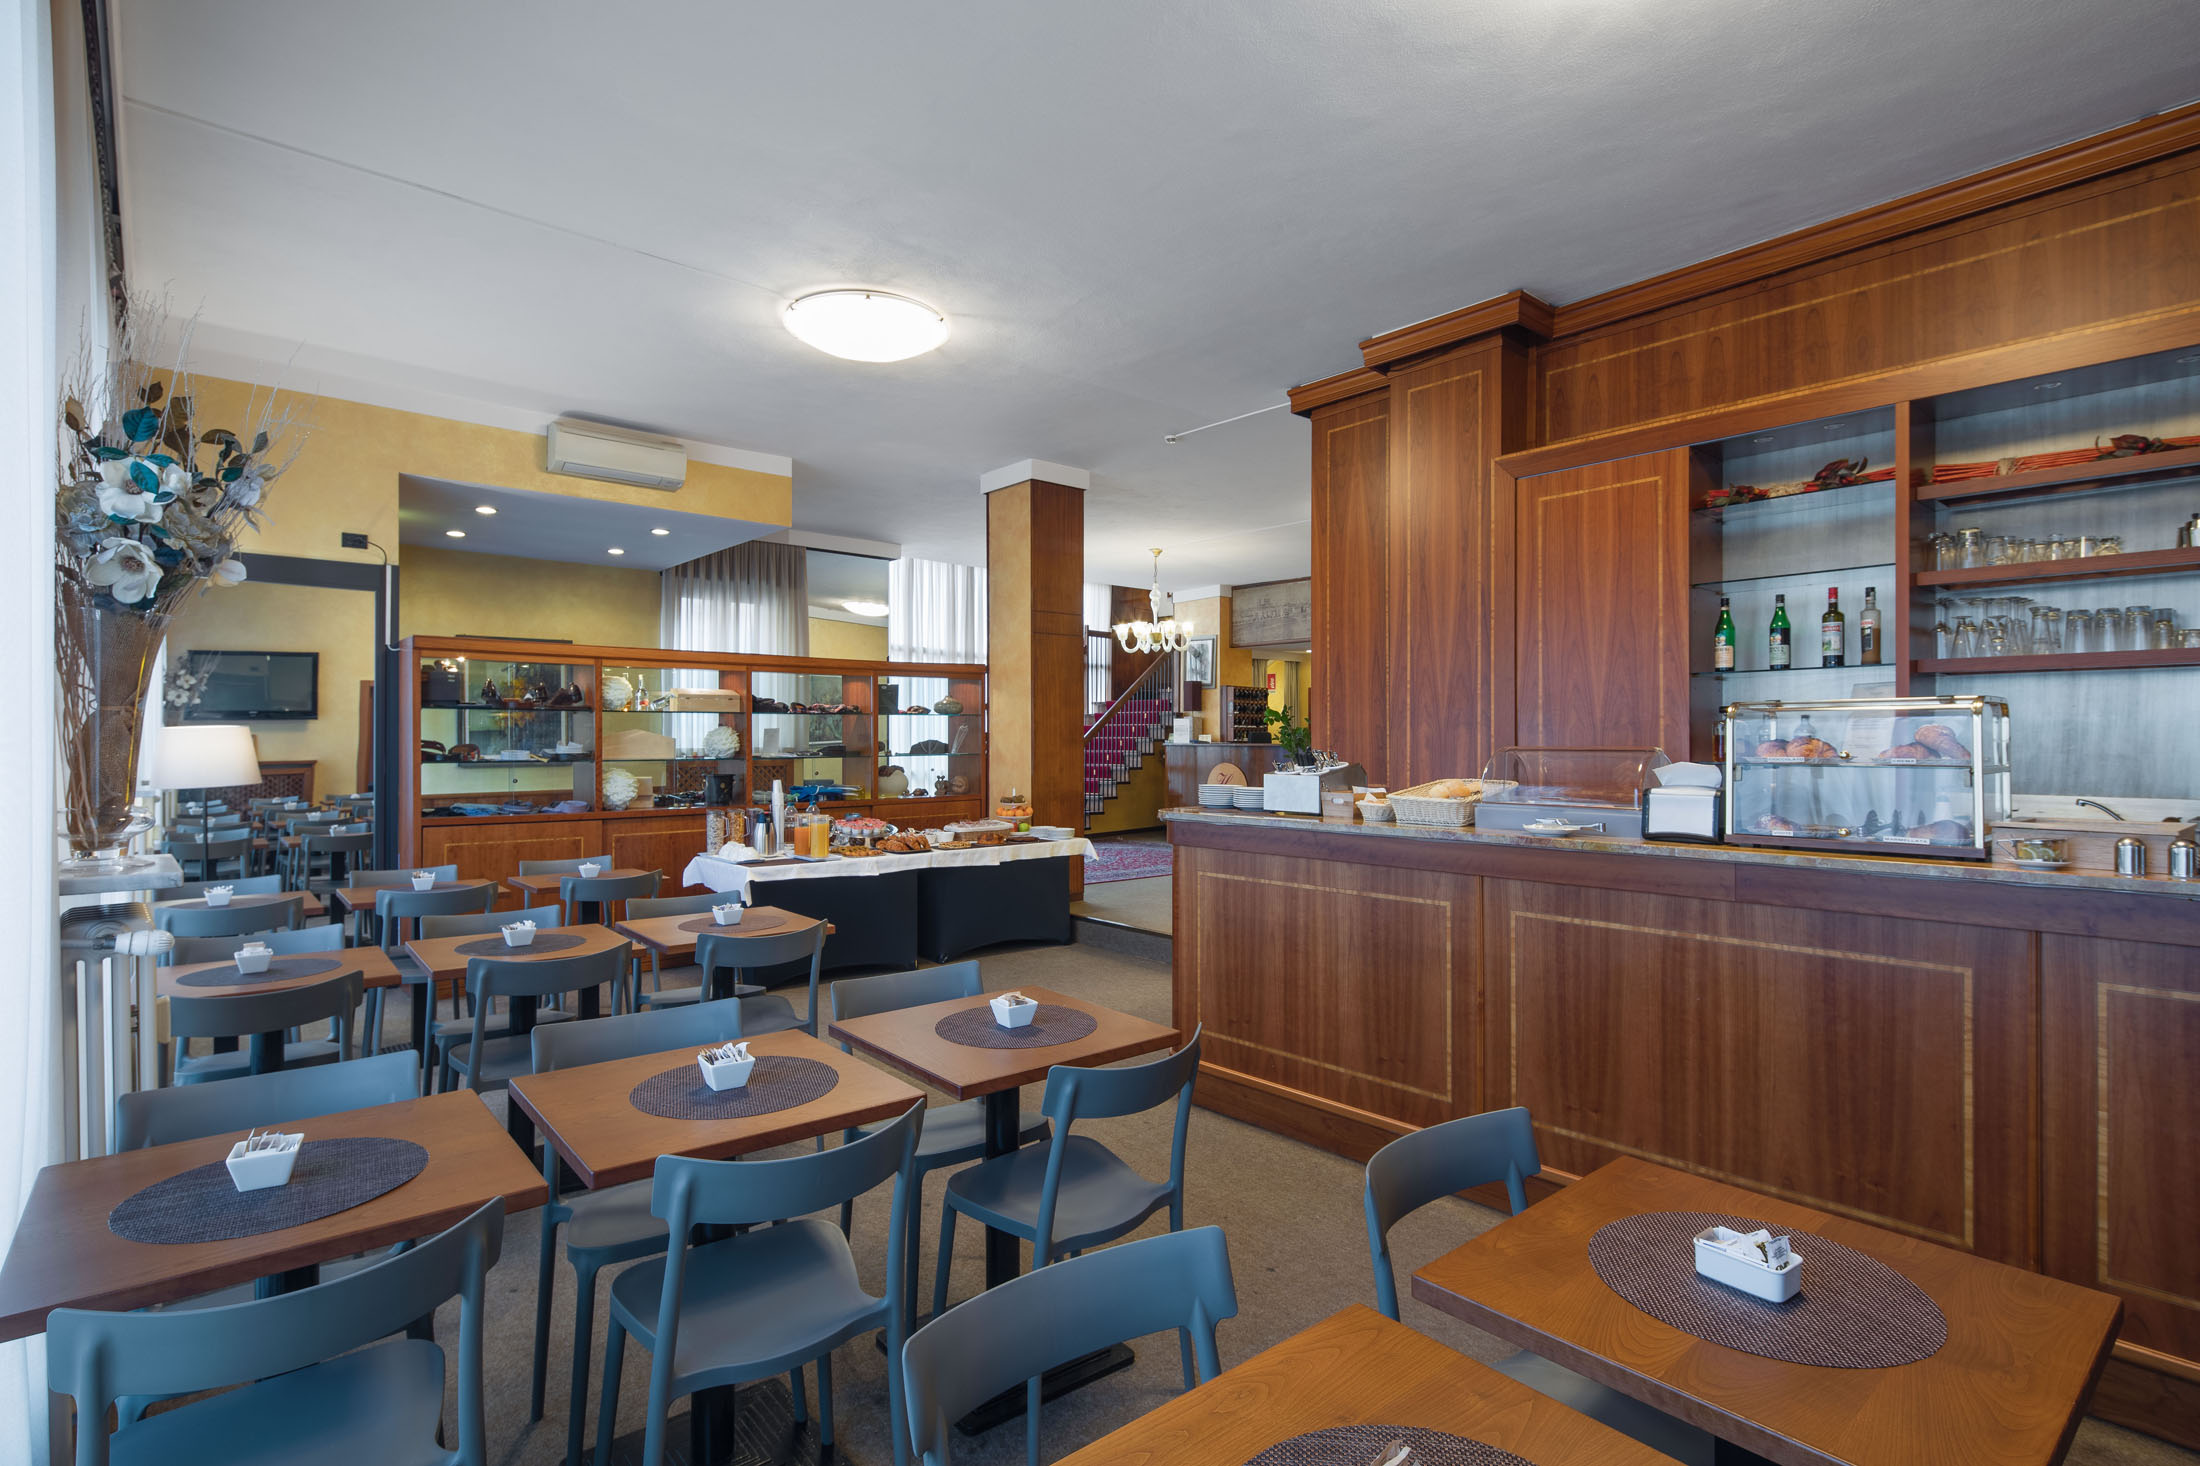 https://www.in-lombardia.it/sites/default/files/accomodation/gallery/105682/37625/excelsior_pavia_25.jpg